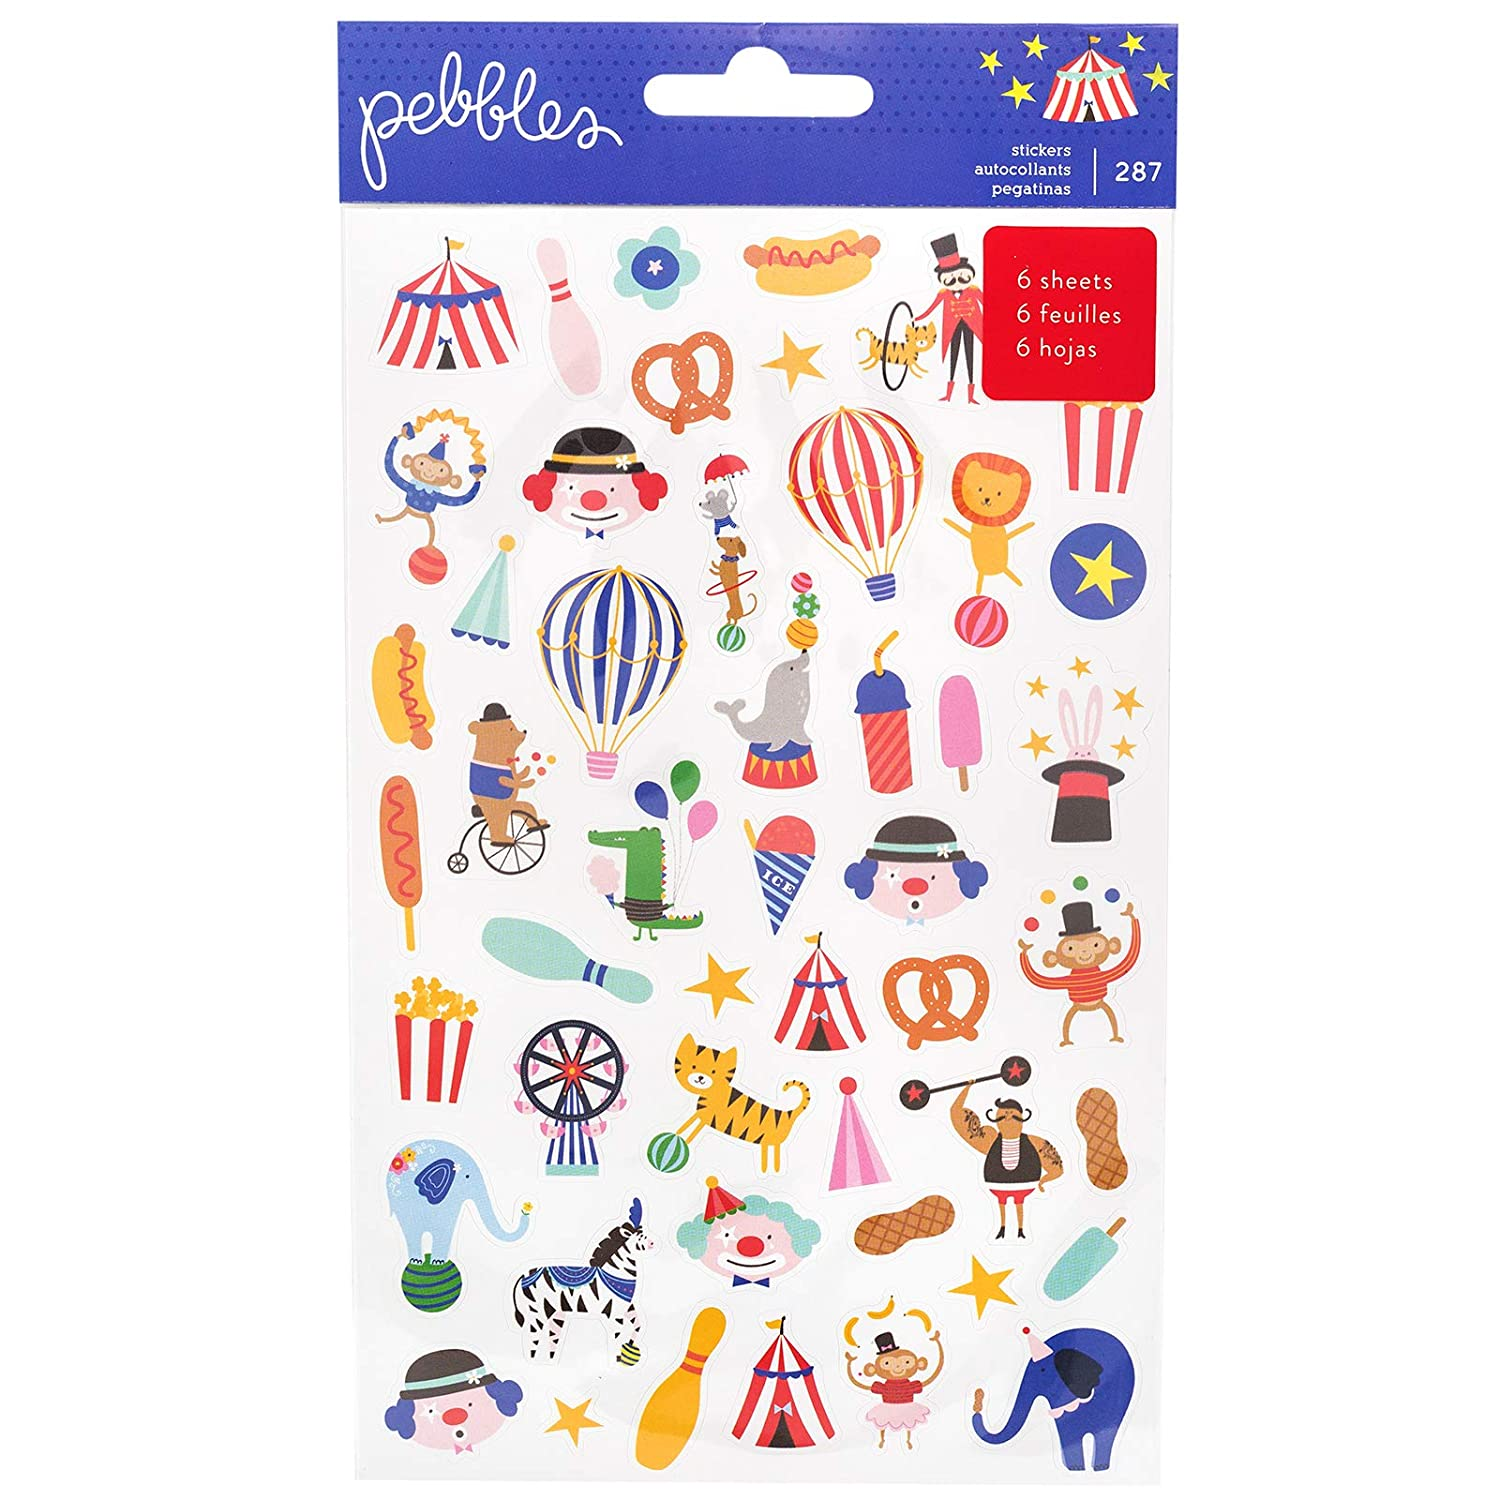 Pebbles 734114 Sticker Books, Multi